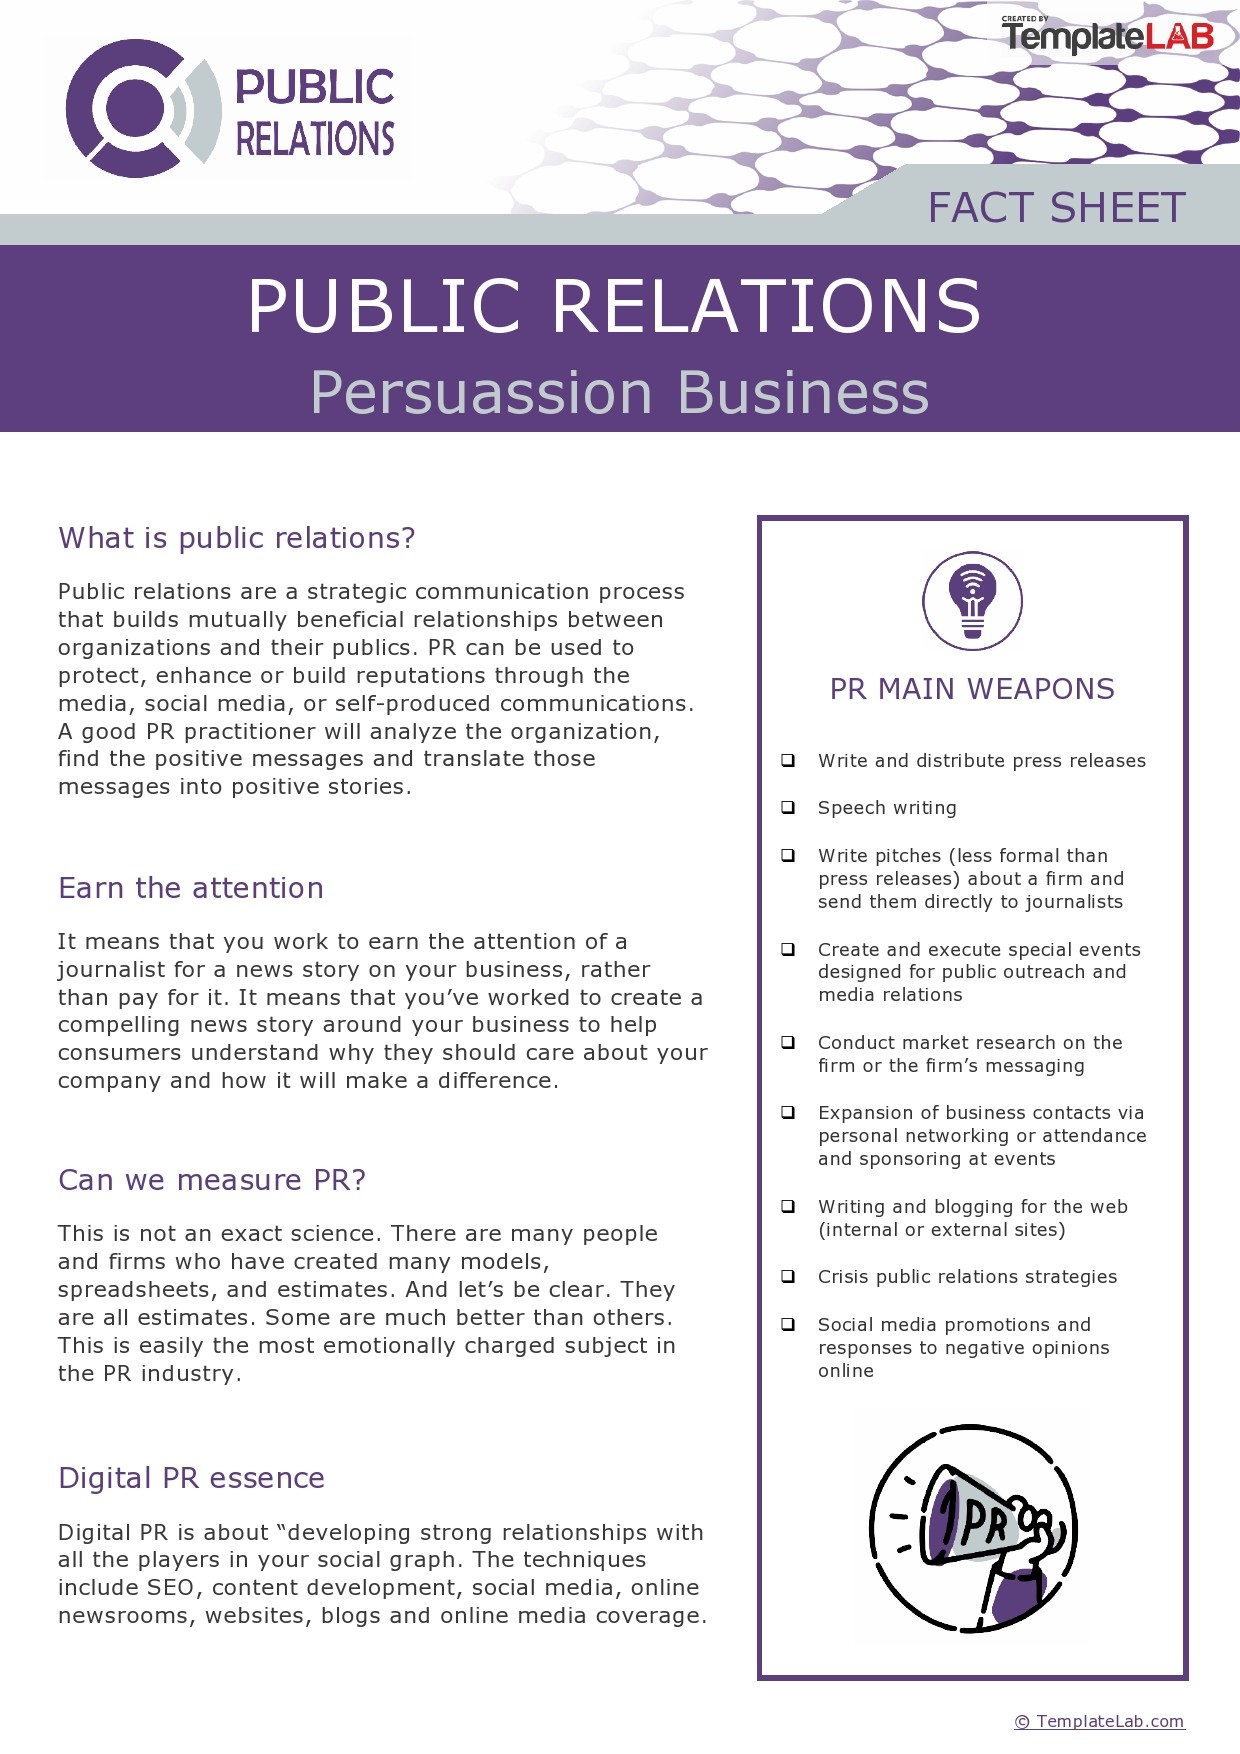 Free Public Relations Fact Sheet Template - TemplateLab.com